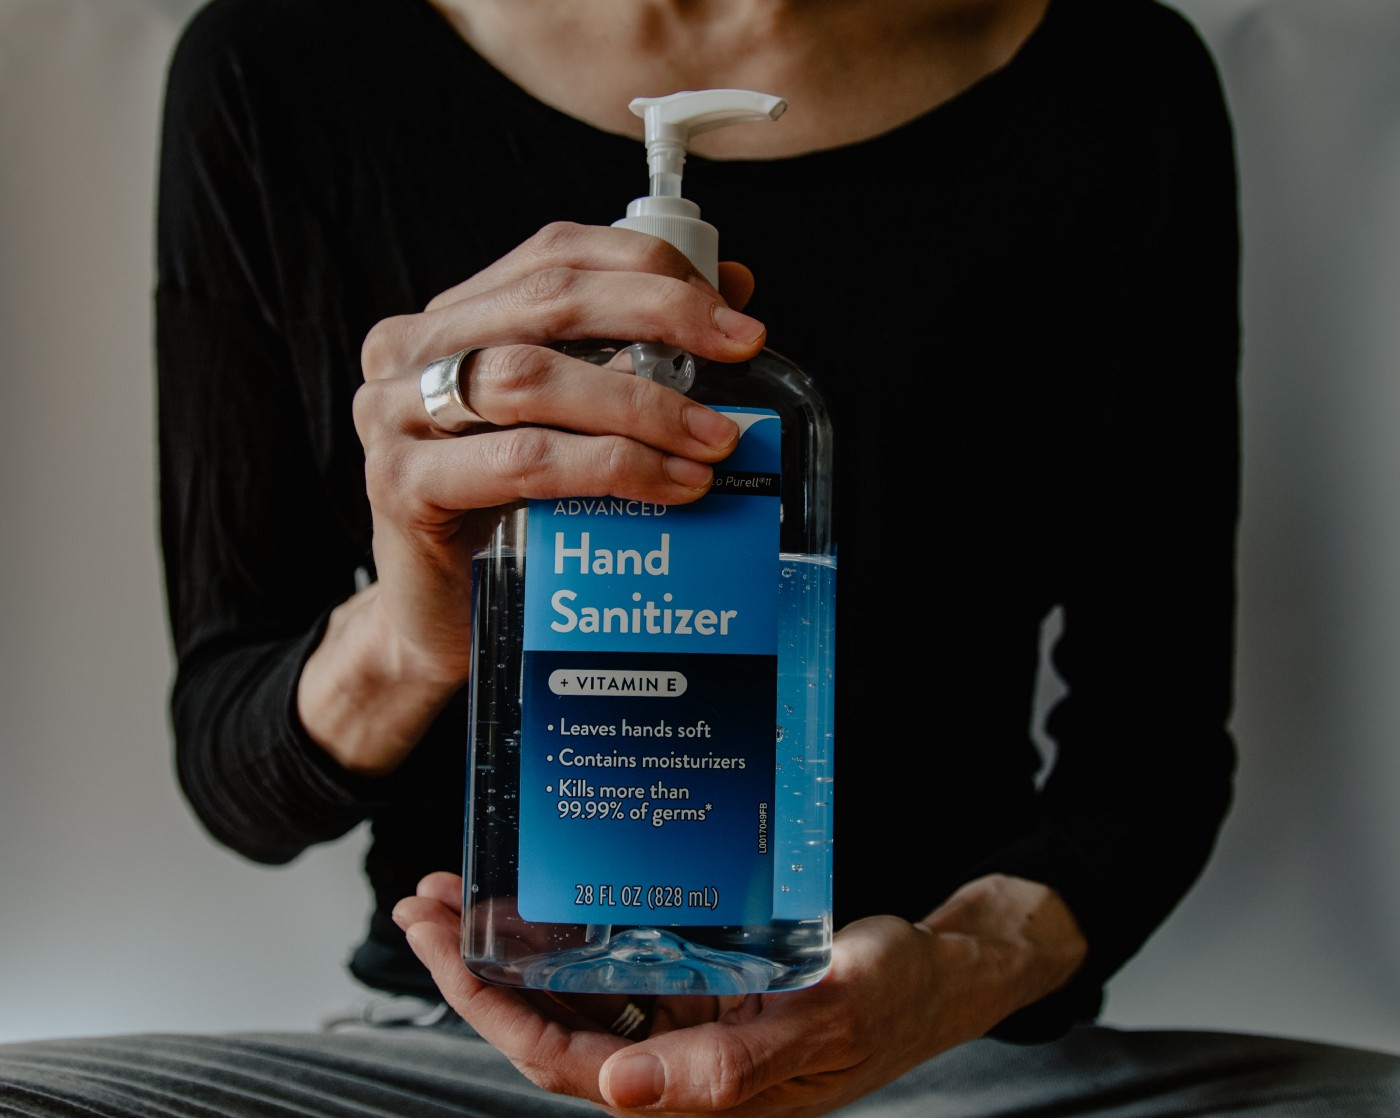 A woman holding a plastic container with hand sanitizer.